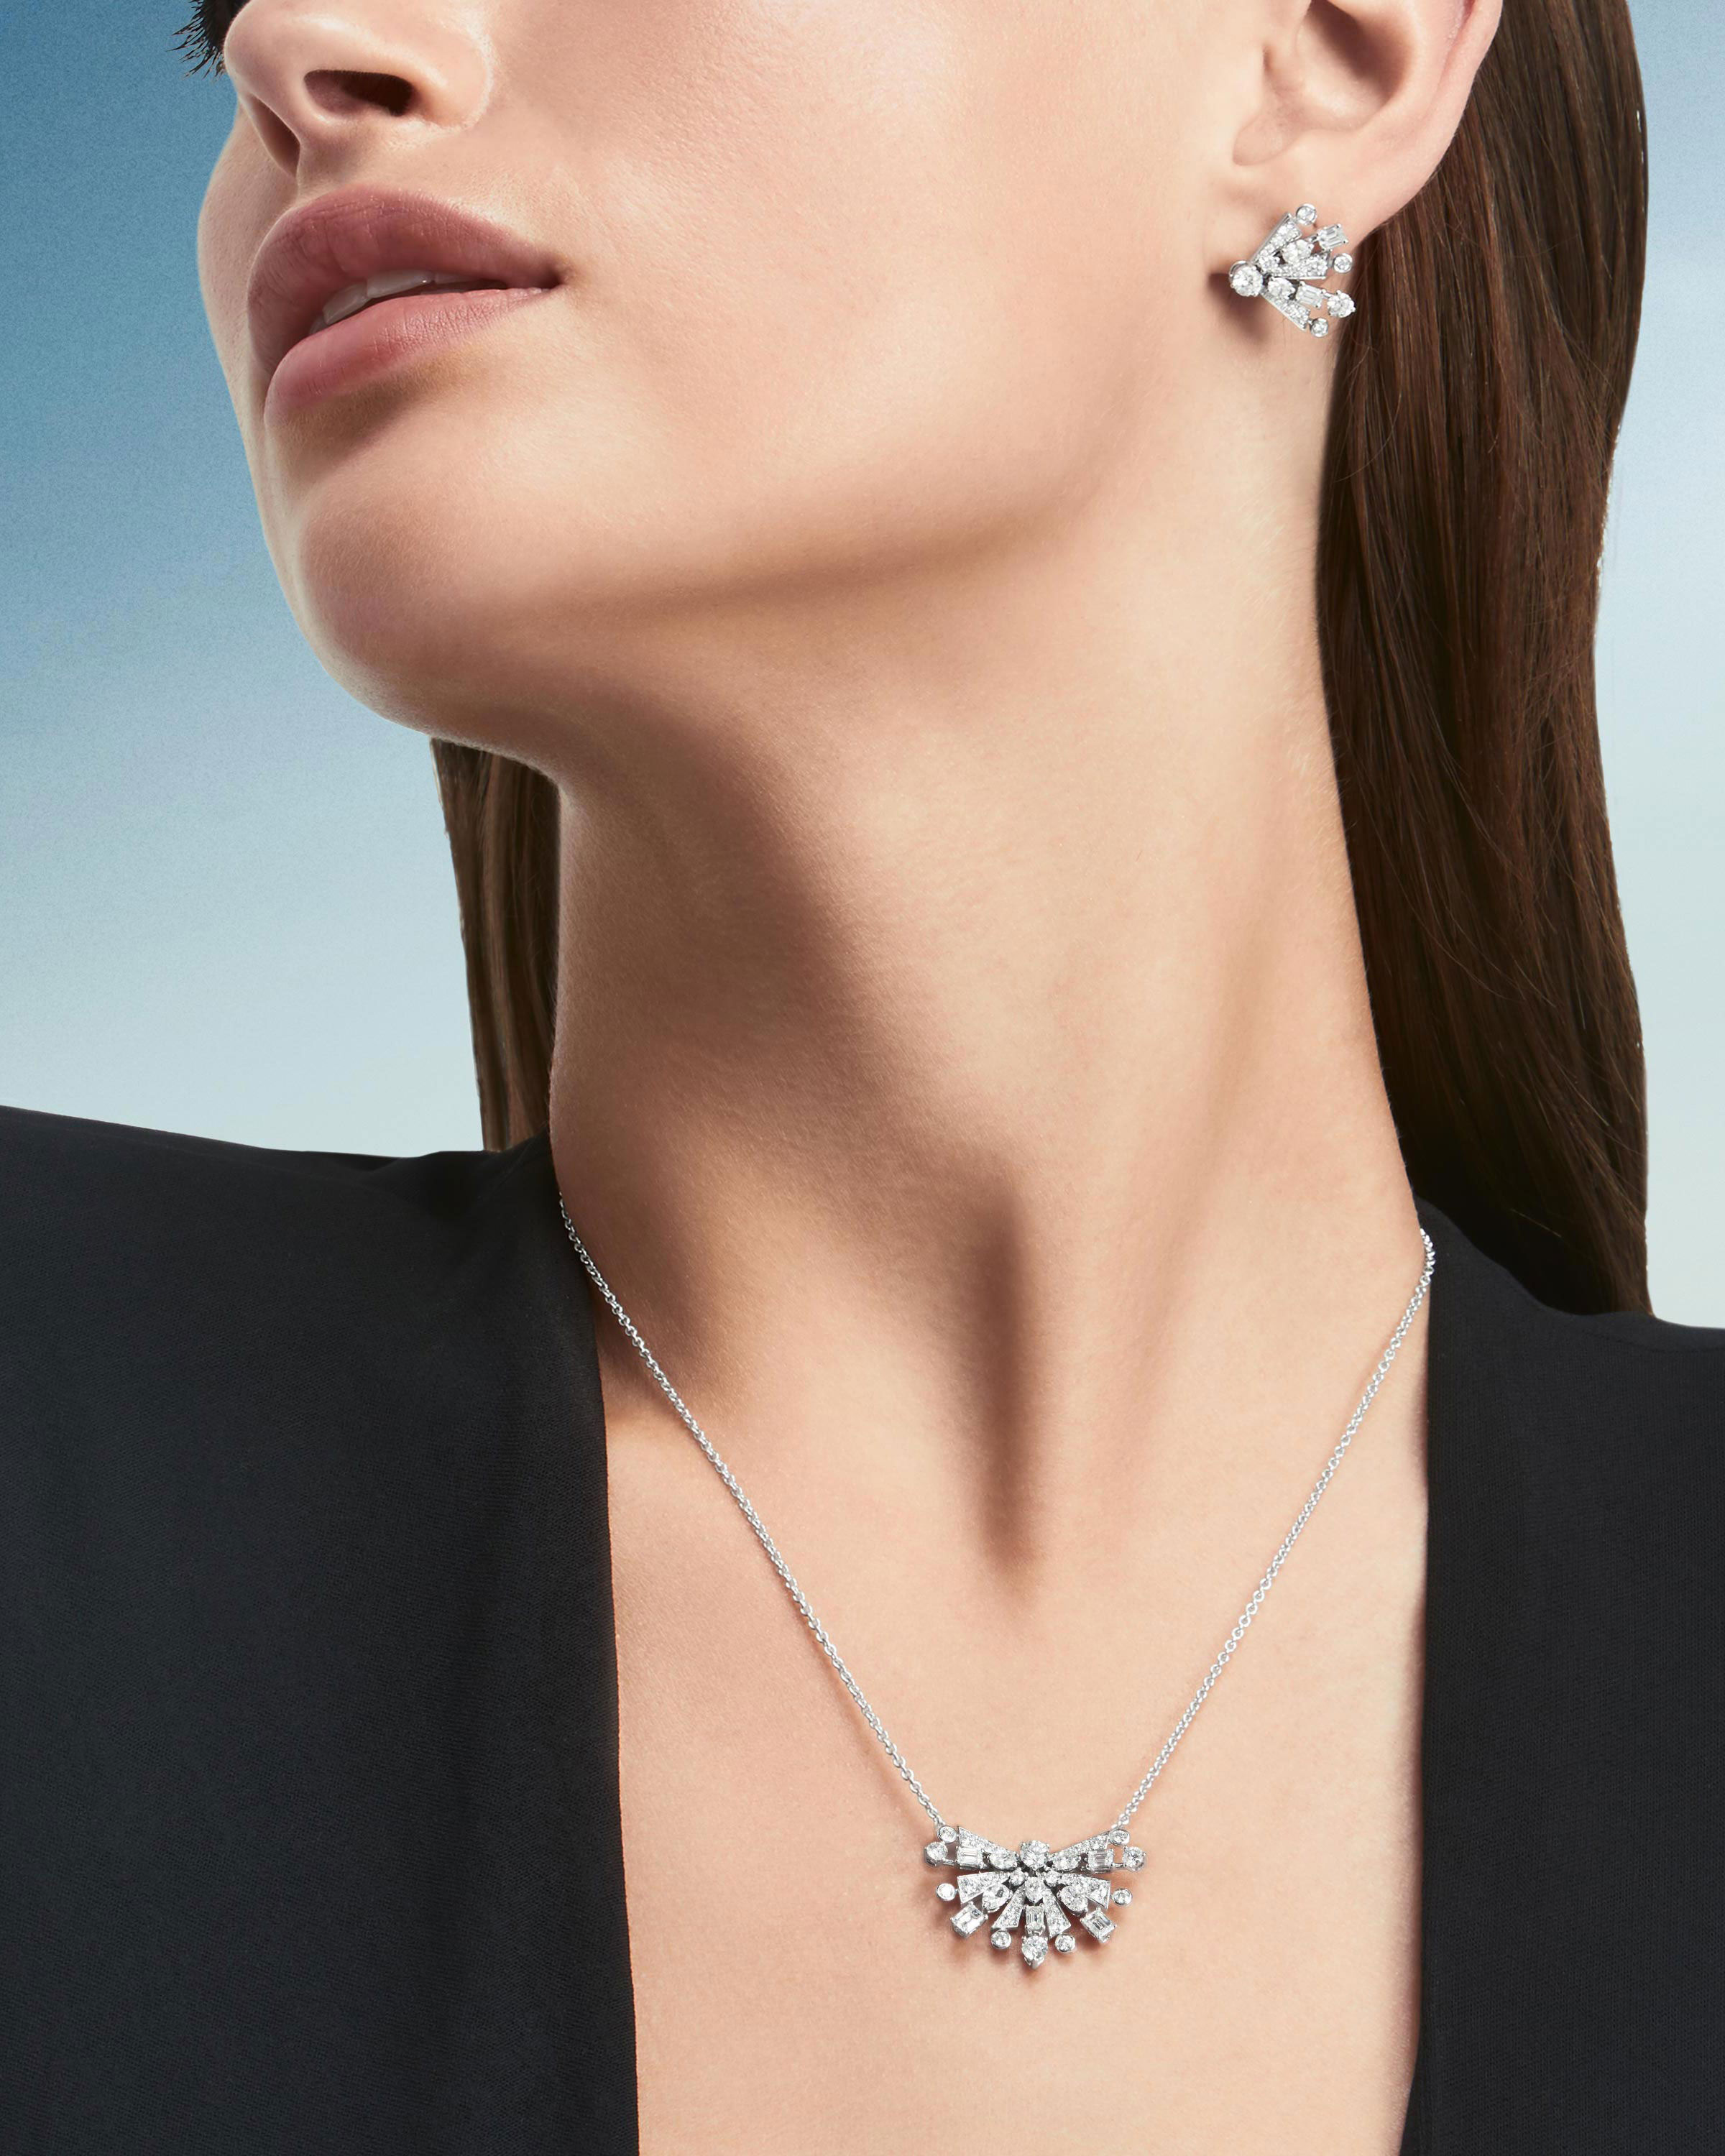 Close up of a model wearing the Graff New Dawn jewellery collection diamond earrings & pendant